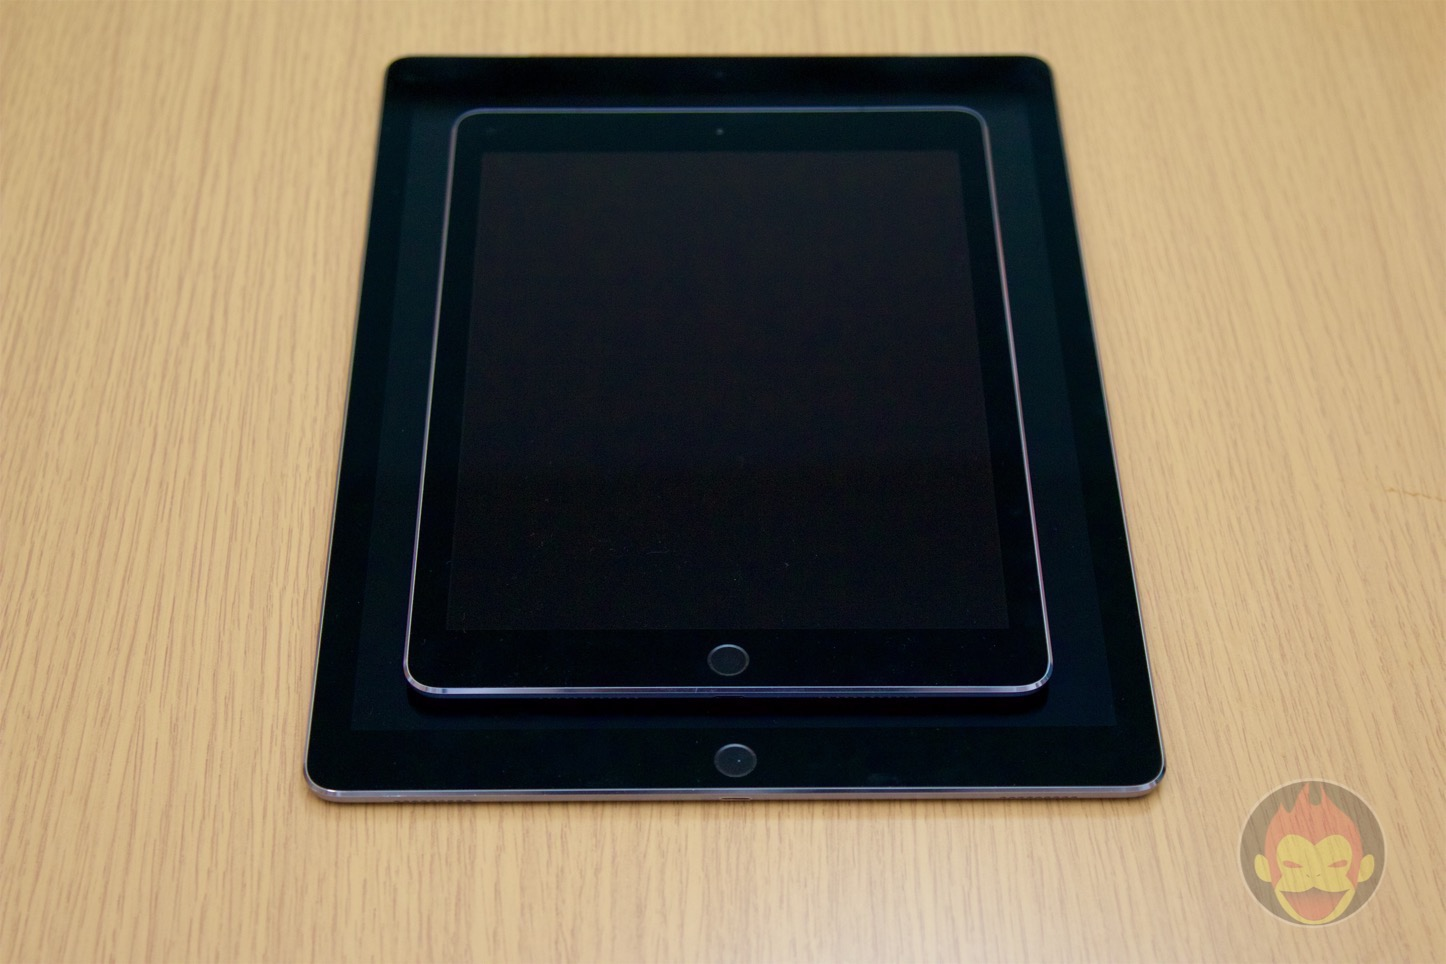 IPad Pro Space Gray 128GB Photo Review